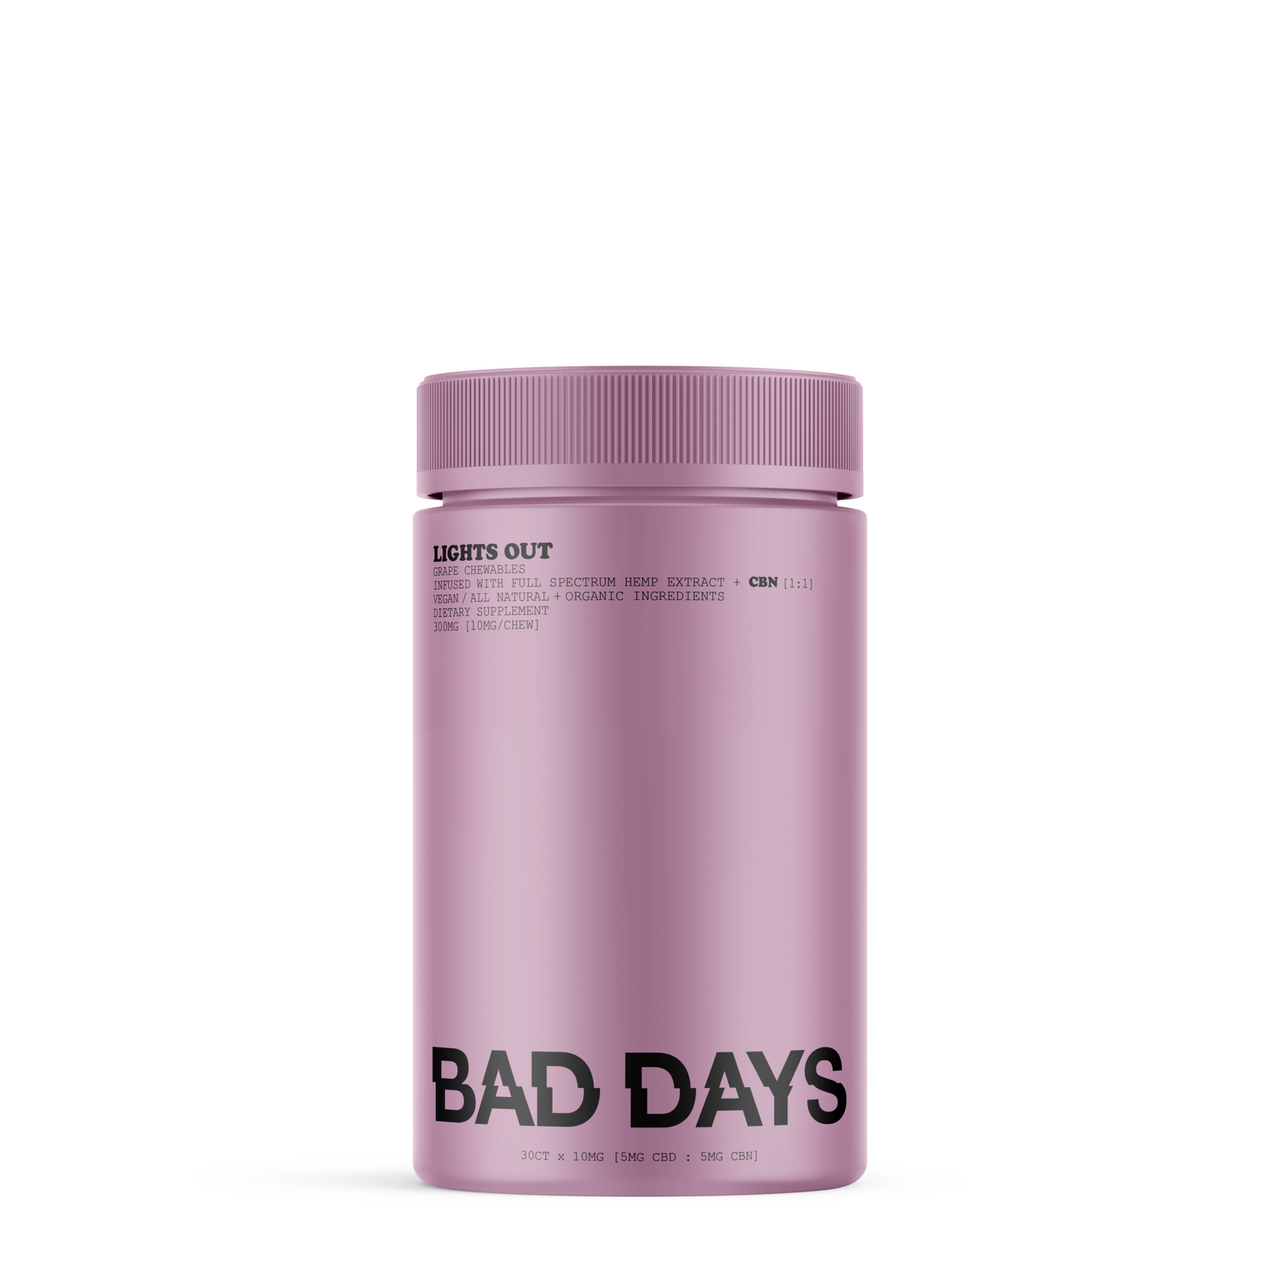 Bad Days Lights Out 30 Count 300mg Full Spectrum CBD + CBN Gummies